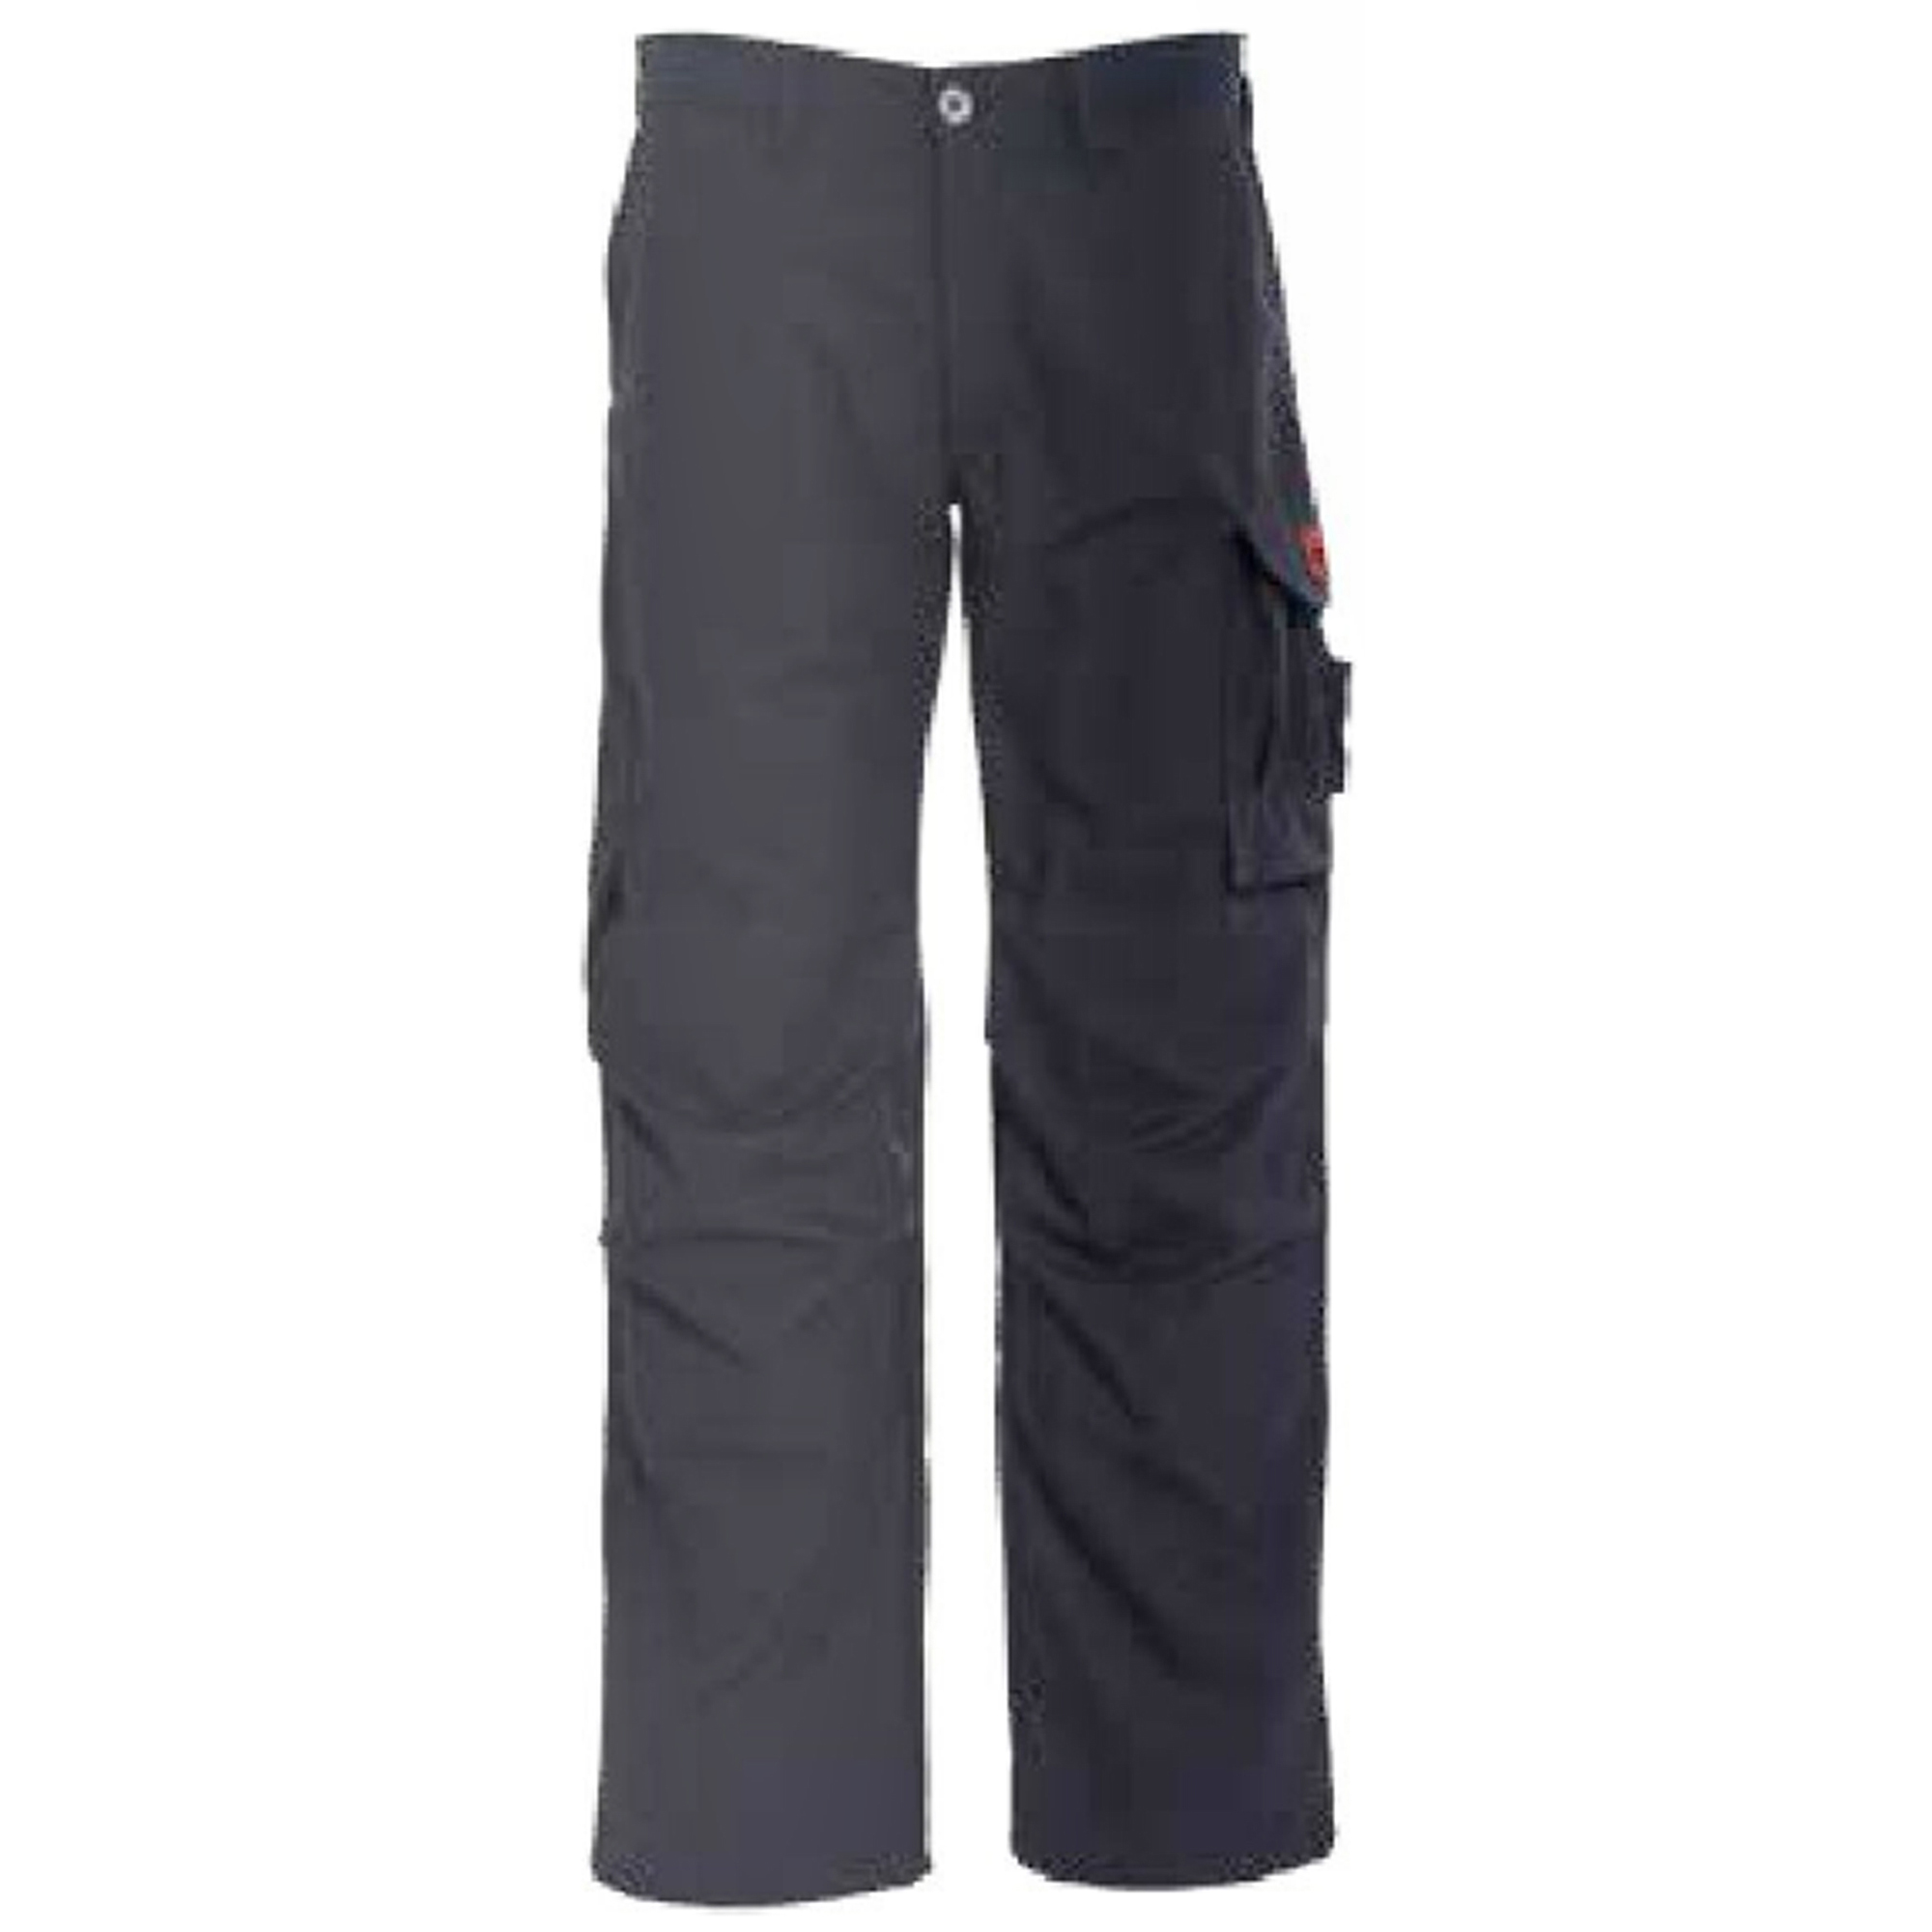 TRANEMO 6020 81 NON-METAL ARC FLASH TROUSERS - 9.5 CAL/CM²